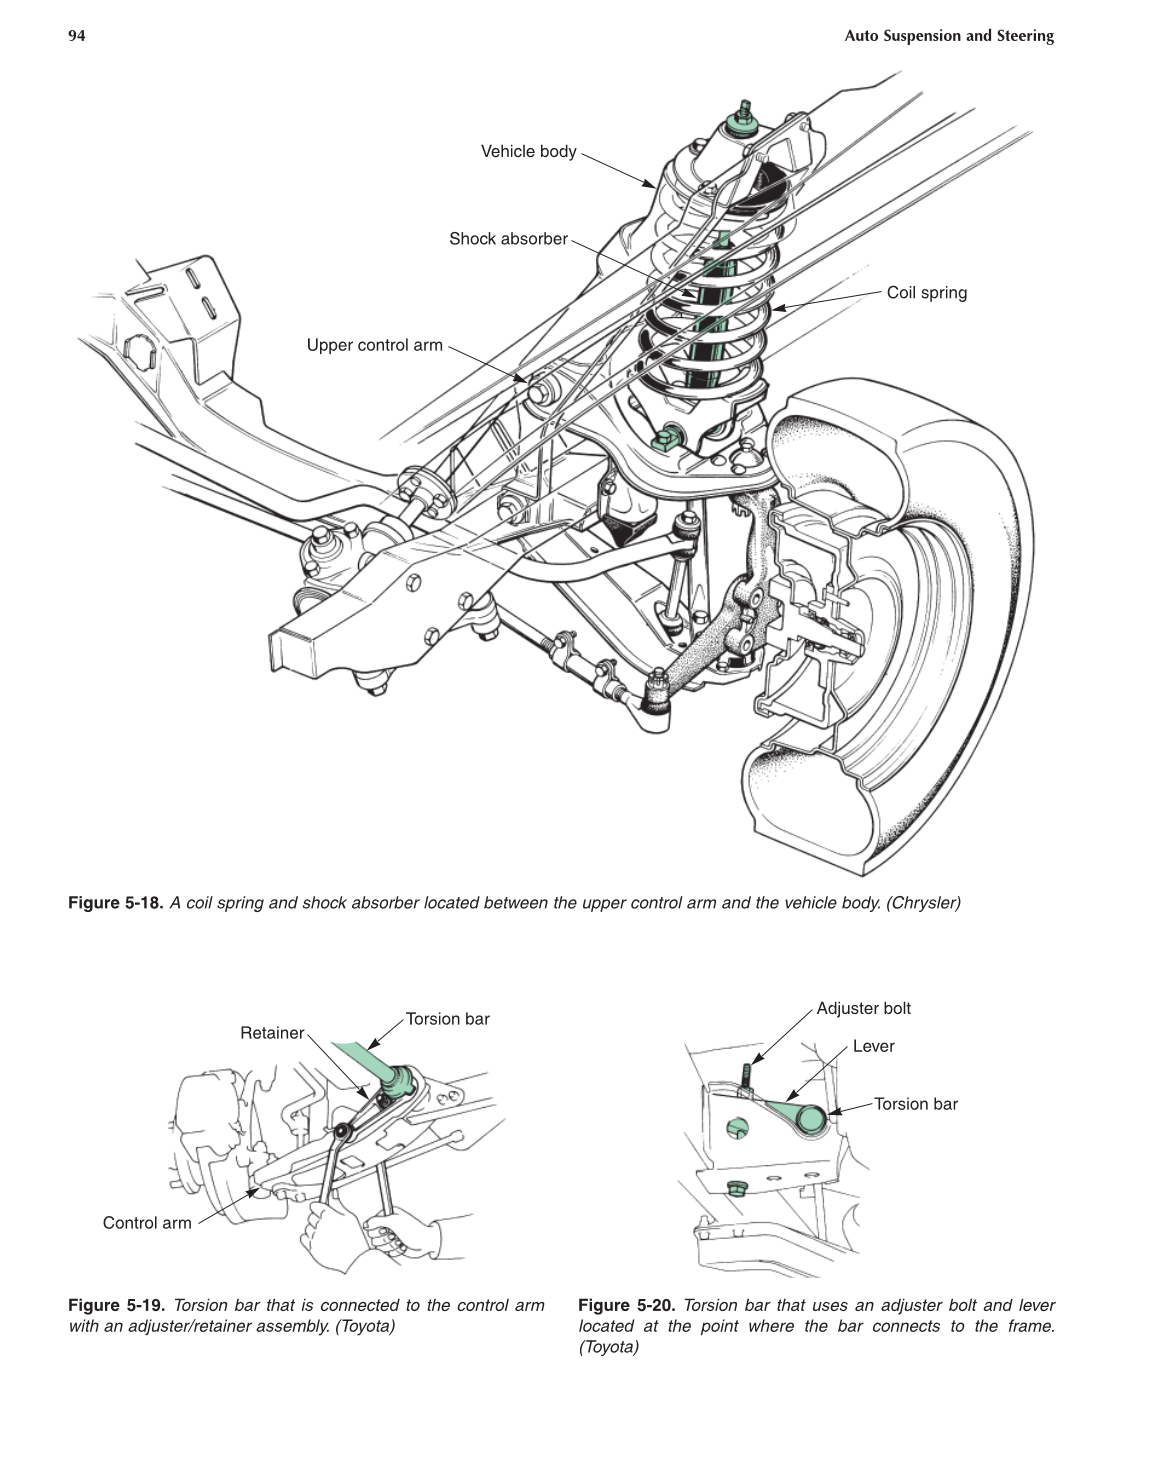 Auto Suspension and Steering, 4th Edition page 94